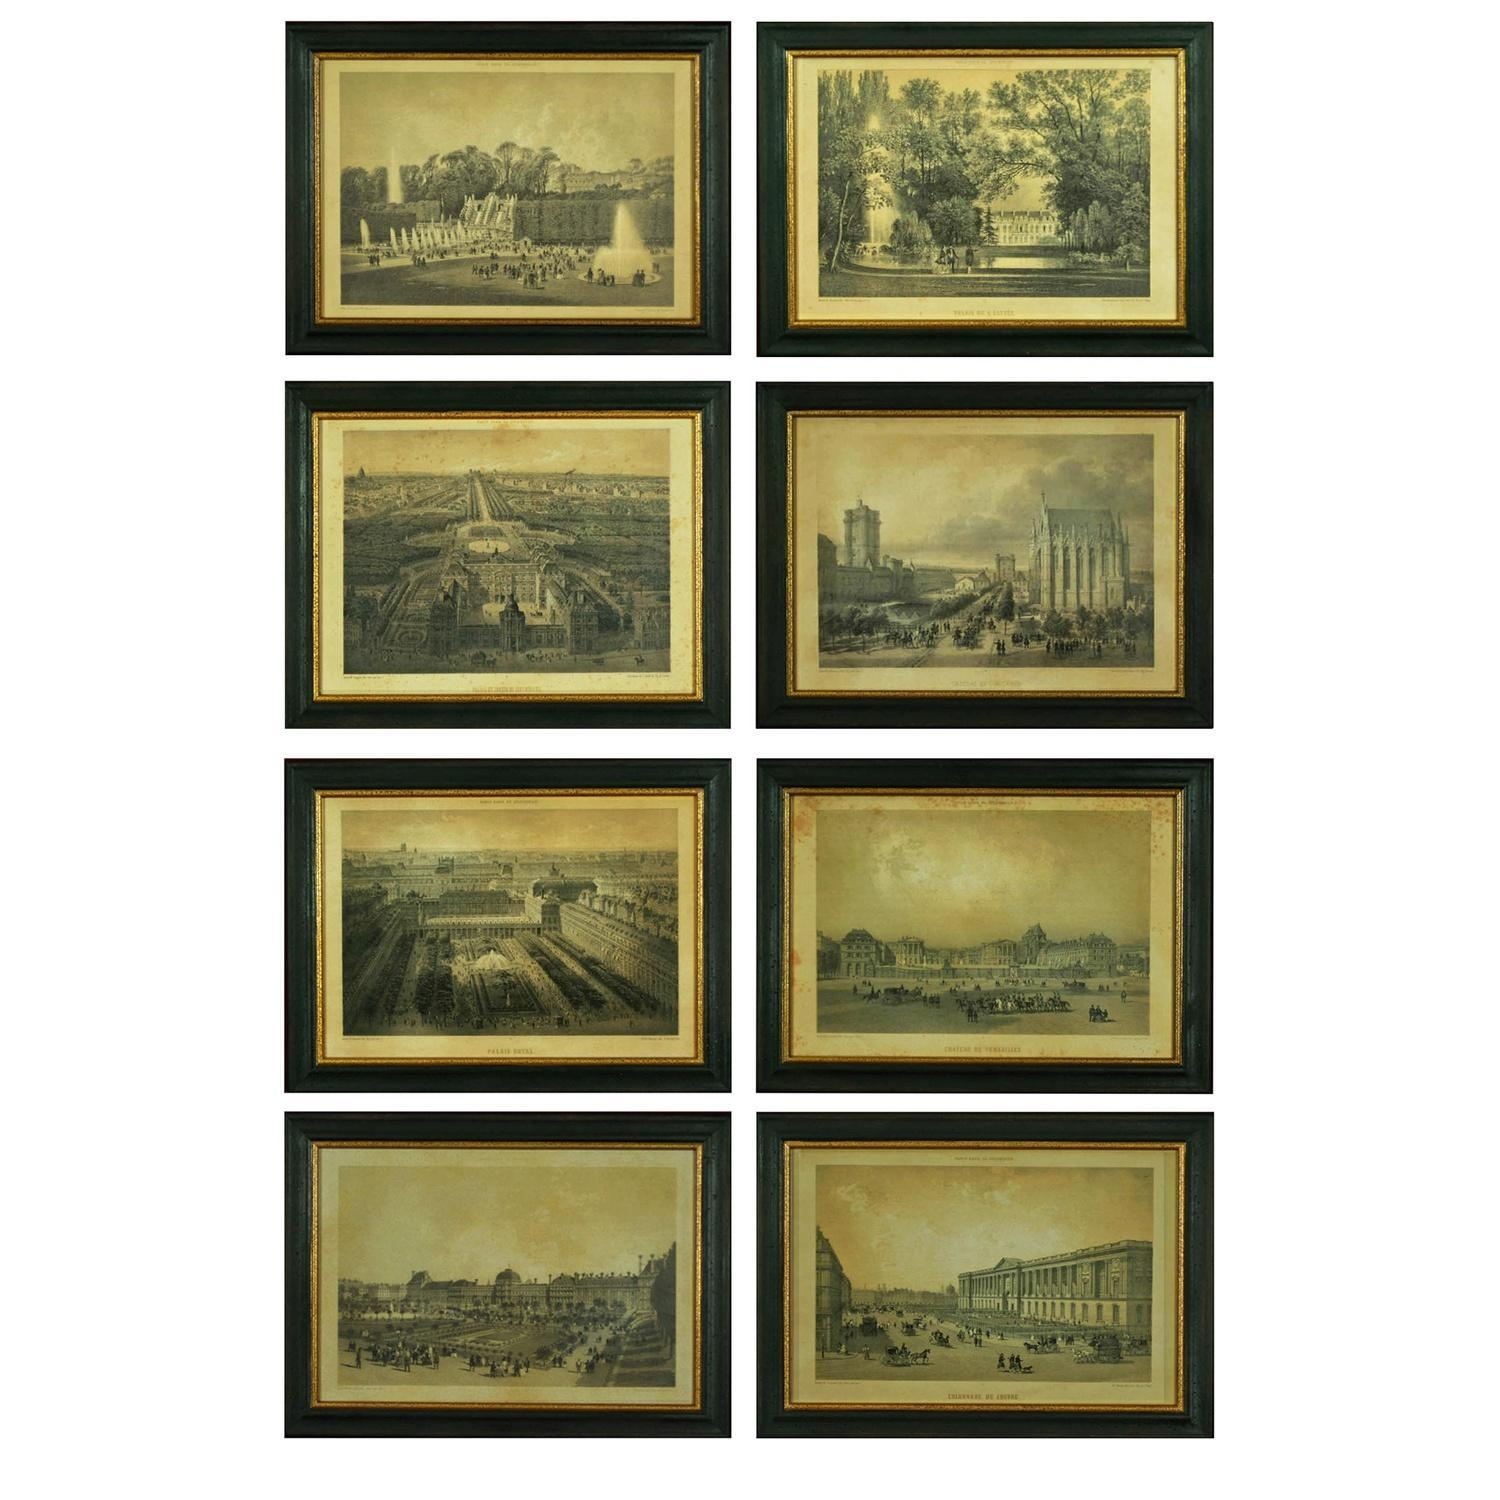 Decorative Wall Plates French Country Kitchen Decor I Inside Country French Wall Art (View 6 of 20)